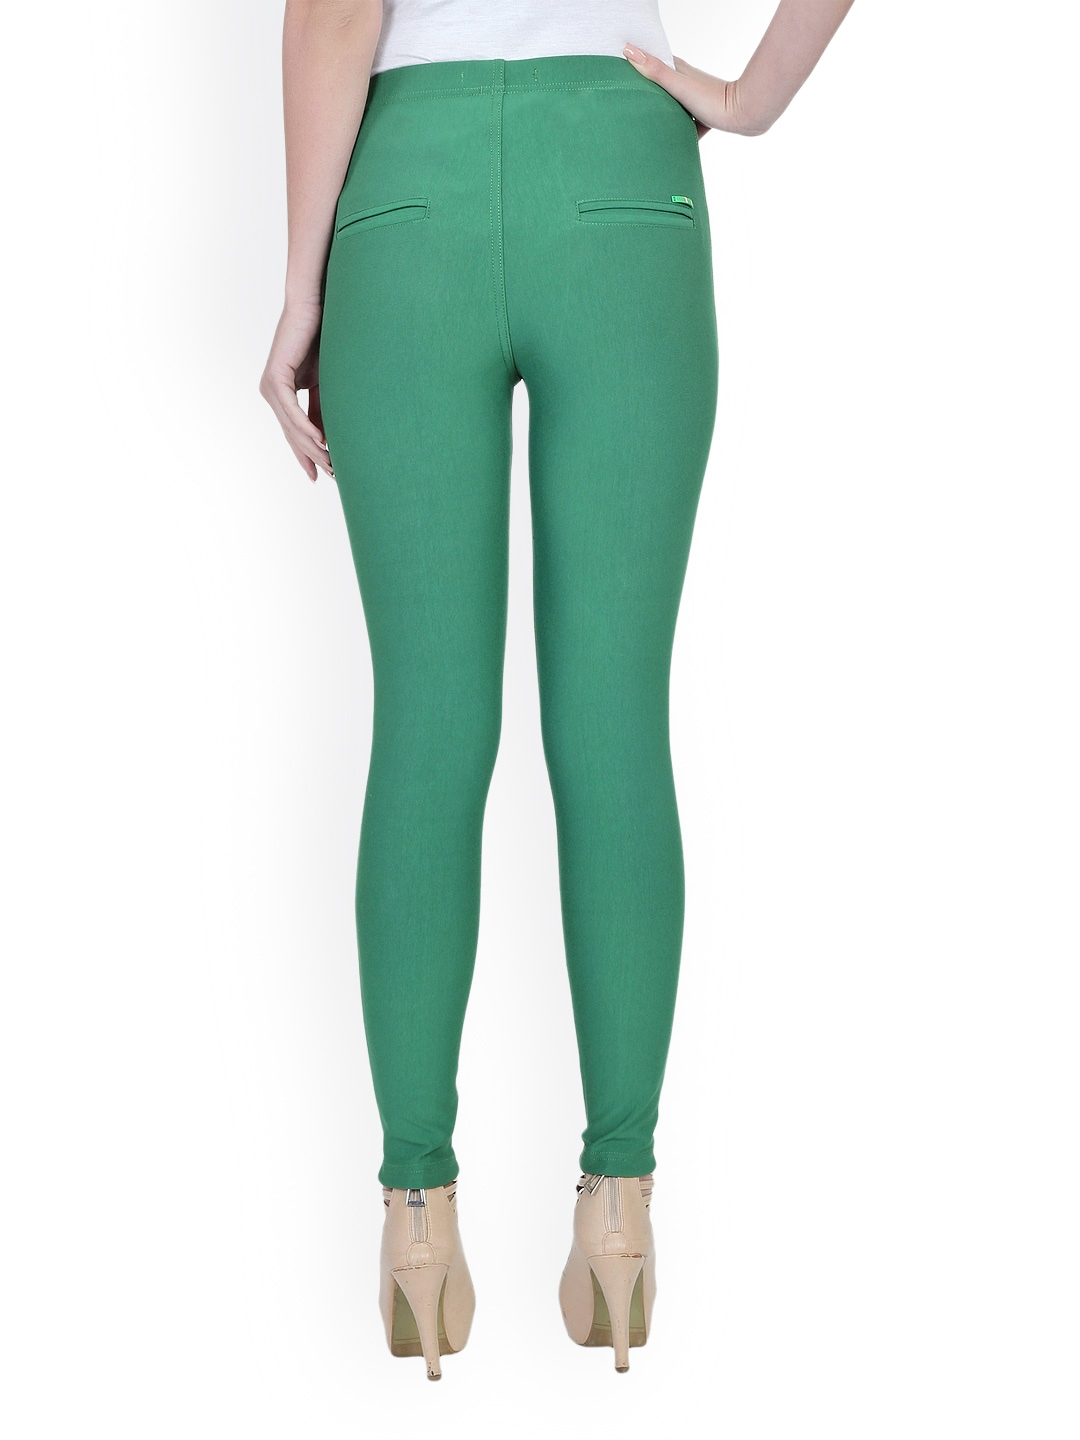 Find great deals on eBay for green jeggings. Shop with confidence.